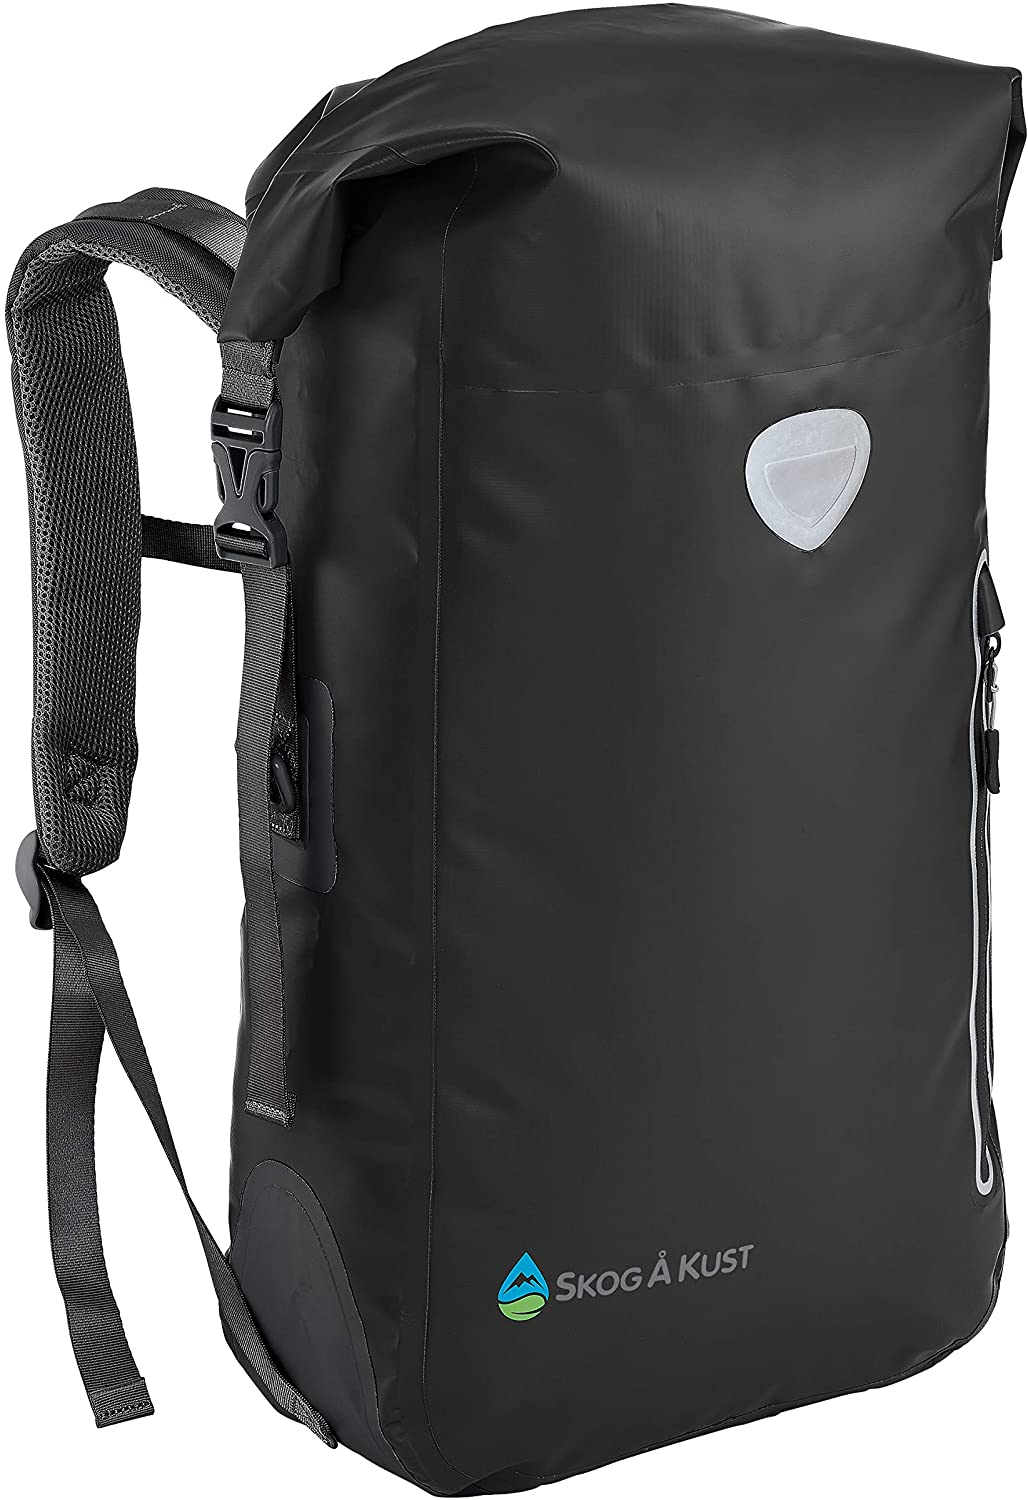 Skog Å Kust BackSåk Floating Waterproof Exterior Zippered Pocket Roll Top Backpack